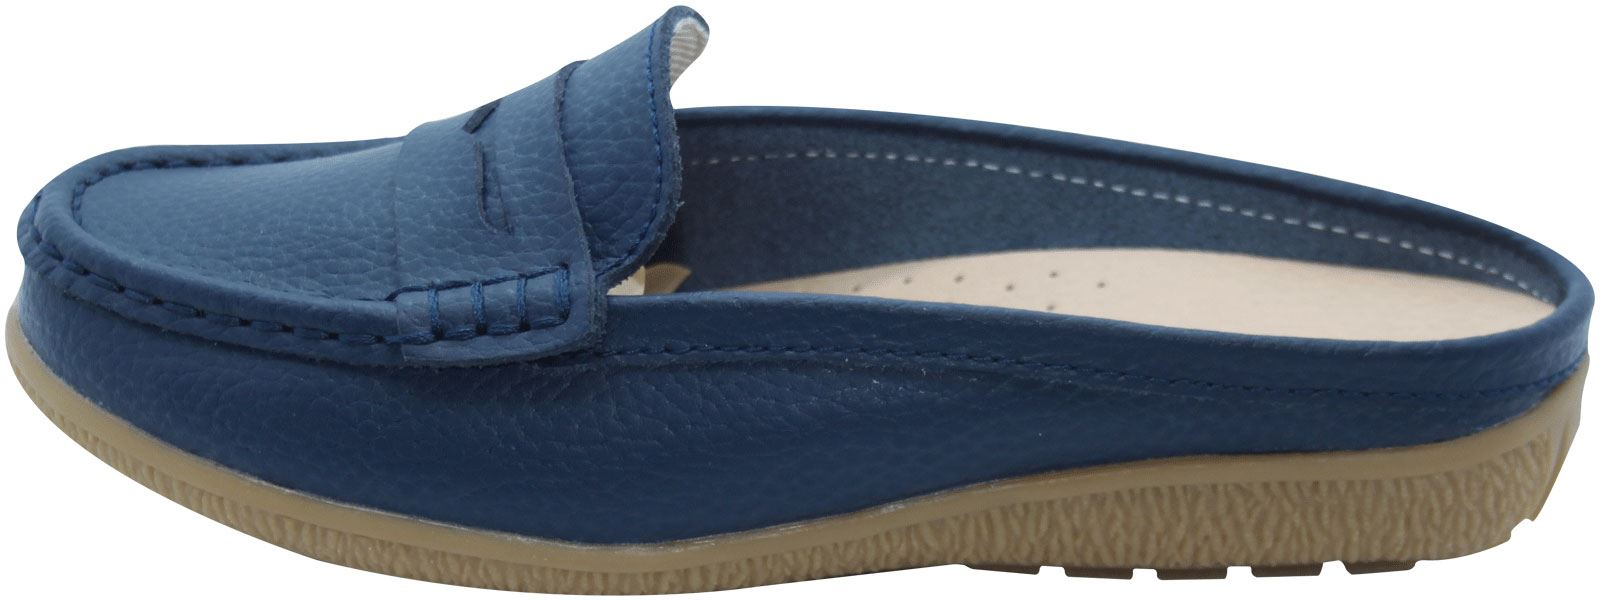 Ladies-Leather-Loafer-Mules-Comfort-Shoes-Womens-Slider-Moccasins-Shoes thumbnail 8